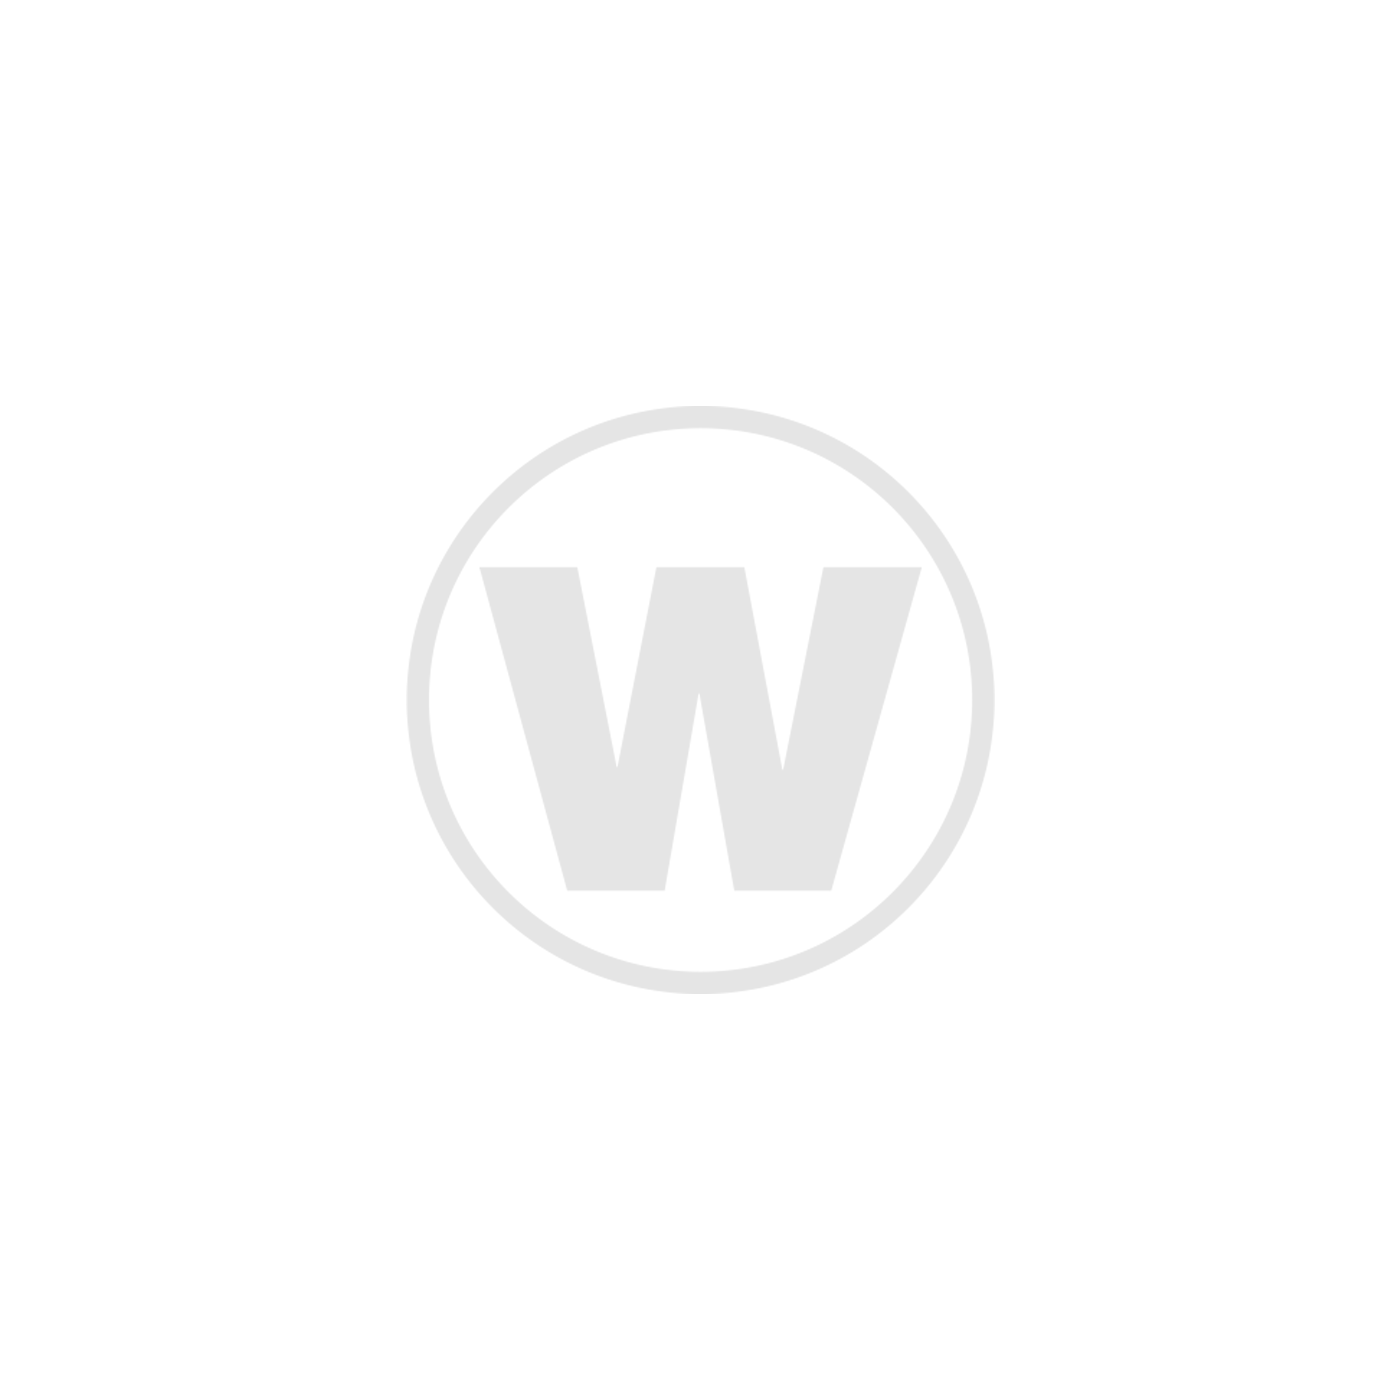 Glenfiddich 21 Year Old Experimental Series No.3 - Winter Storm Batch #2